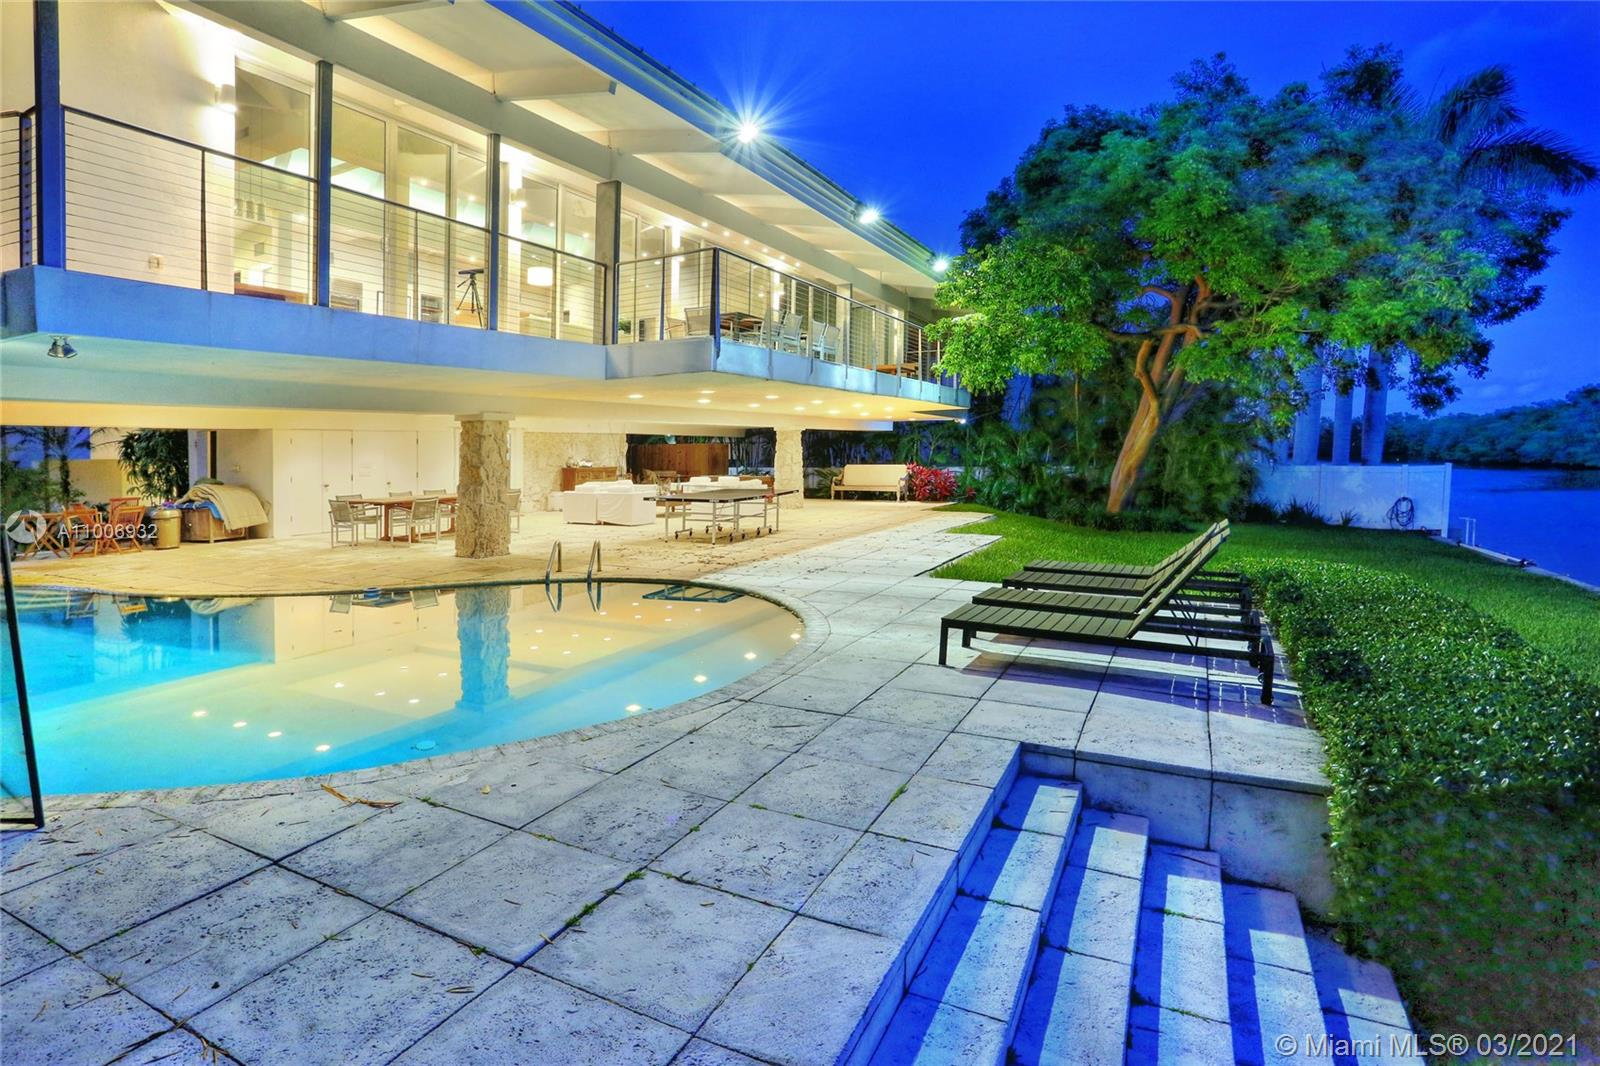 Extraordinary waterfront location. Unique contemporary architecture facing Pines Canal and State Park Bill Baggs. Direct access to Biscayne Bay. The location of this residence is a jewel. Total privacy on a double cul-de-sac street. Gated. Yacht accommodation, large covered pool area to enjoy the water view, cabana bath w/ large inviting couches. The house is elevated w/large Master Suite, reception area, office & open kitchen w/direct water and State Park view. 3 additional bedrooms on the other side of the house. Wood floors t/o the house. High ceilings. Top of the line kitchen, concrete countertop. Reception area offers loft feeling that blends with the exterior. Large balcony. Beautiful landscape and trees.